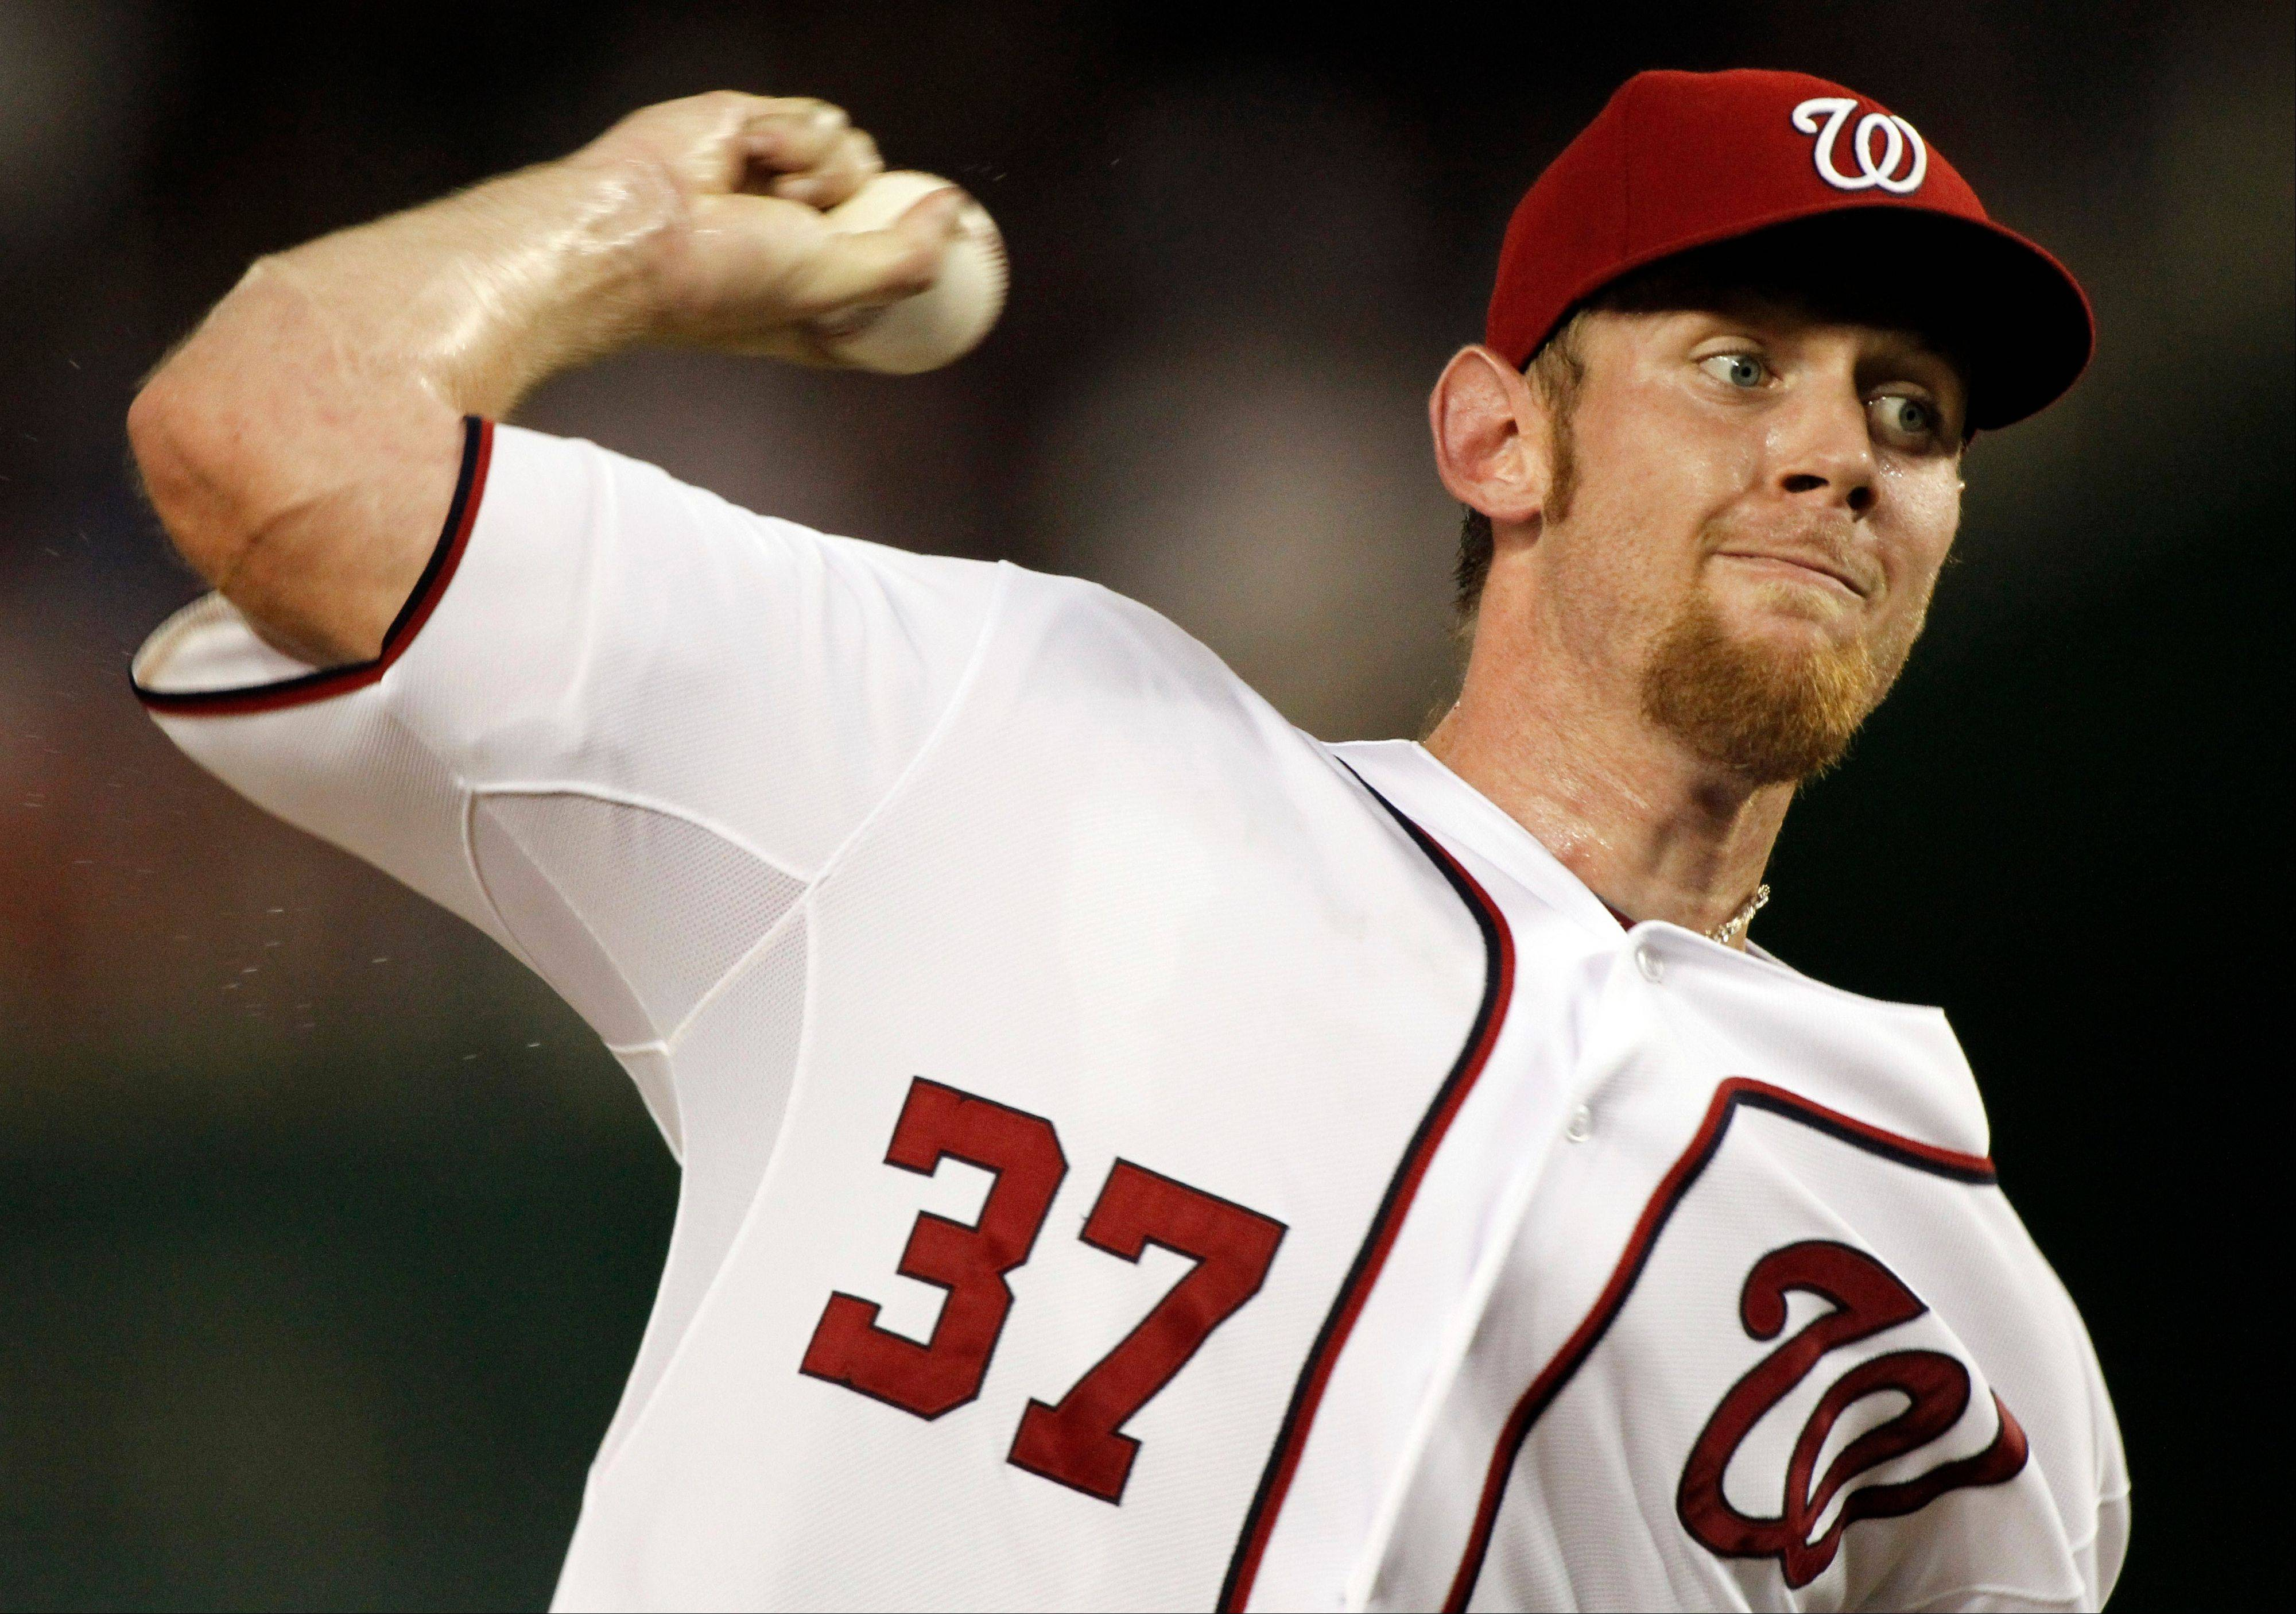 Washington Nationals starting pitcher Stephen Strasburg throws during the second inning Friday at home against the Miami Marlins.